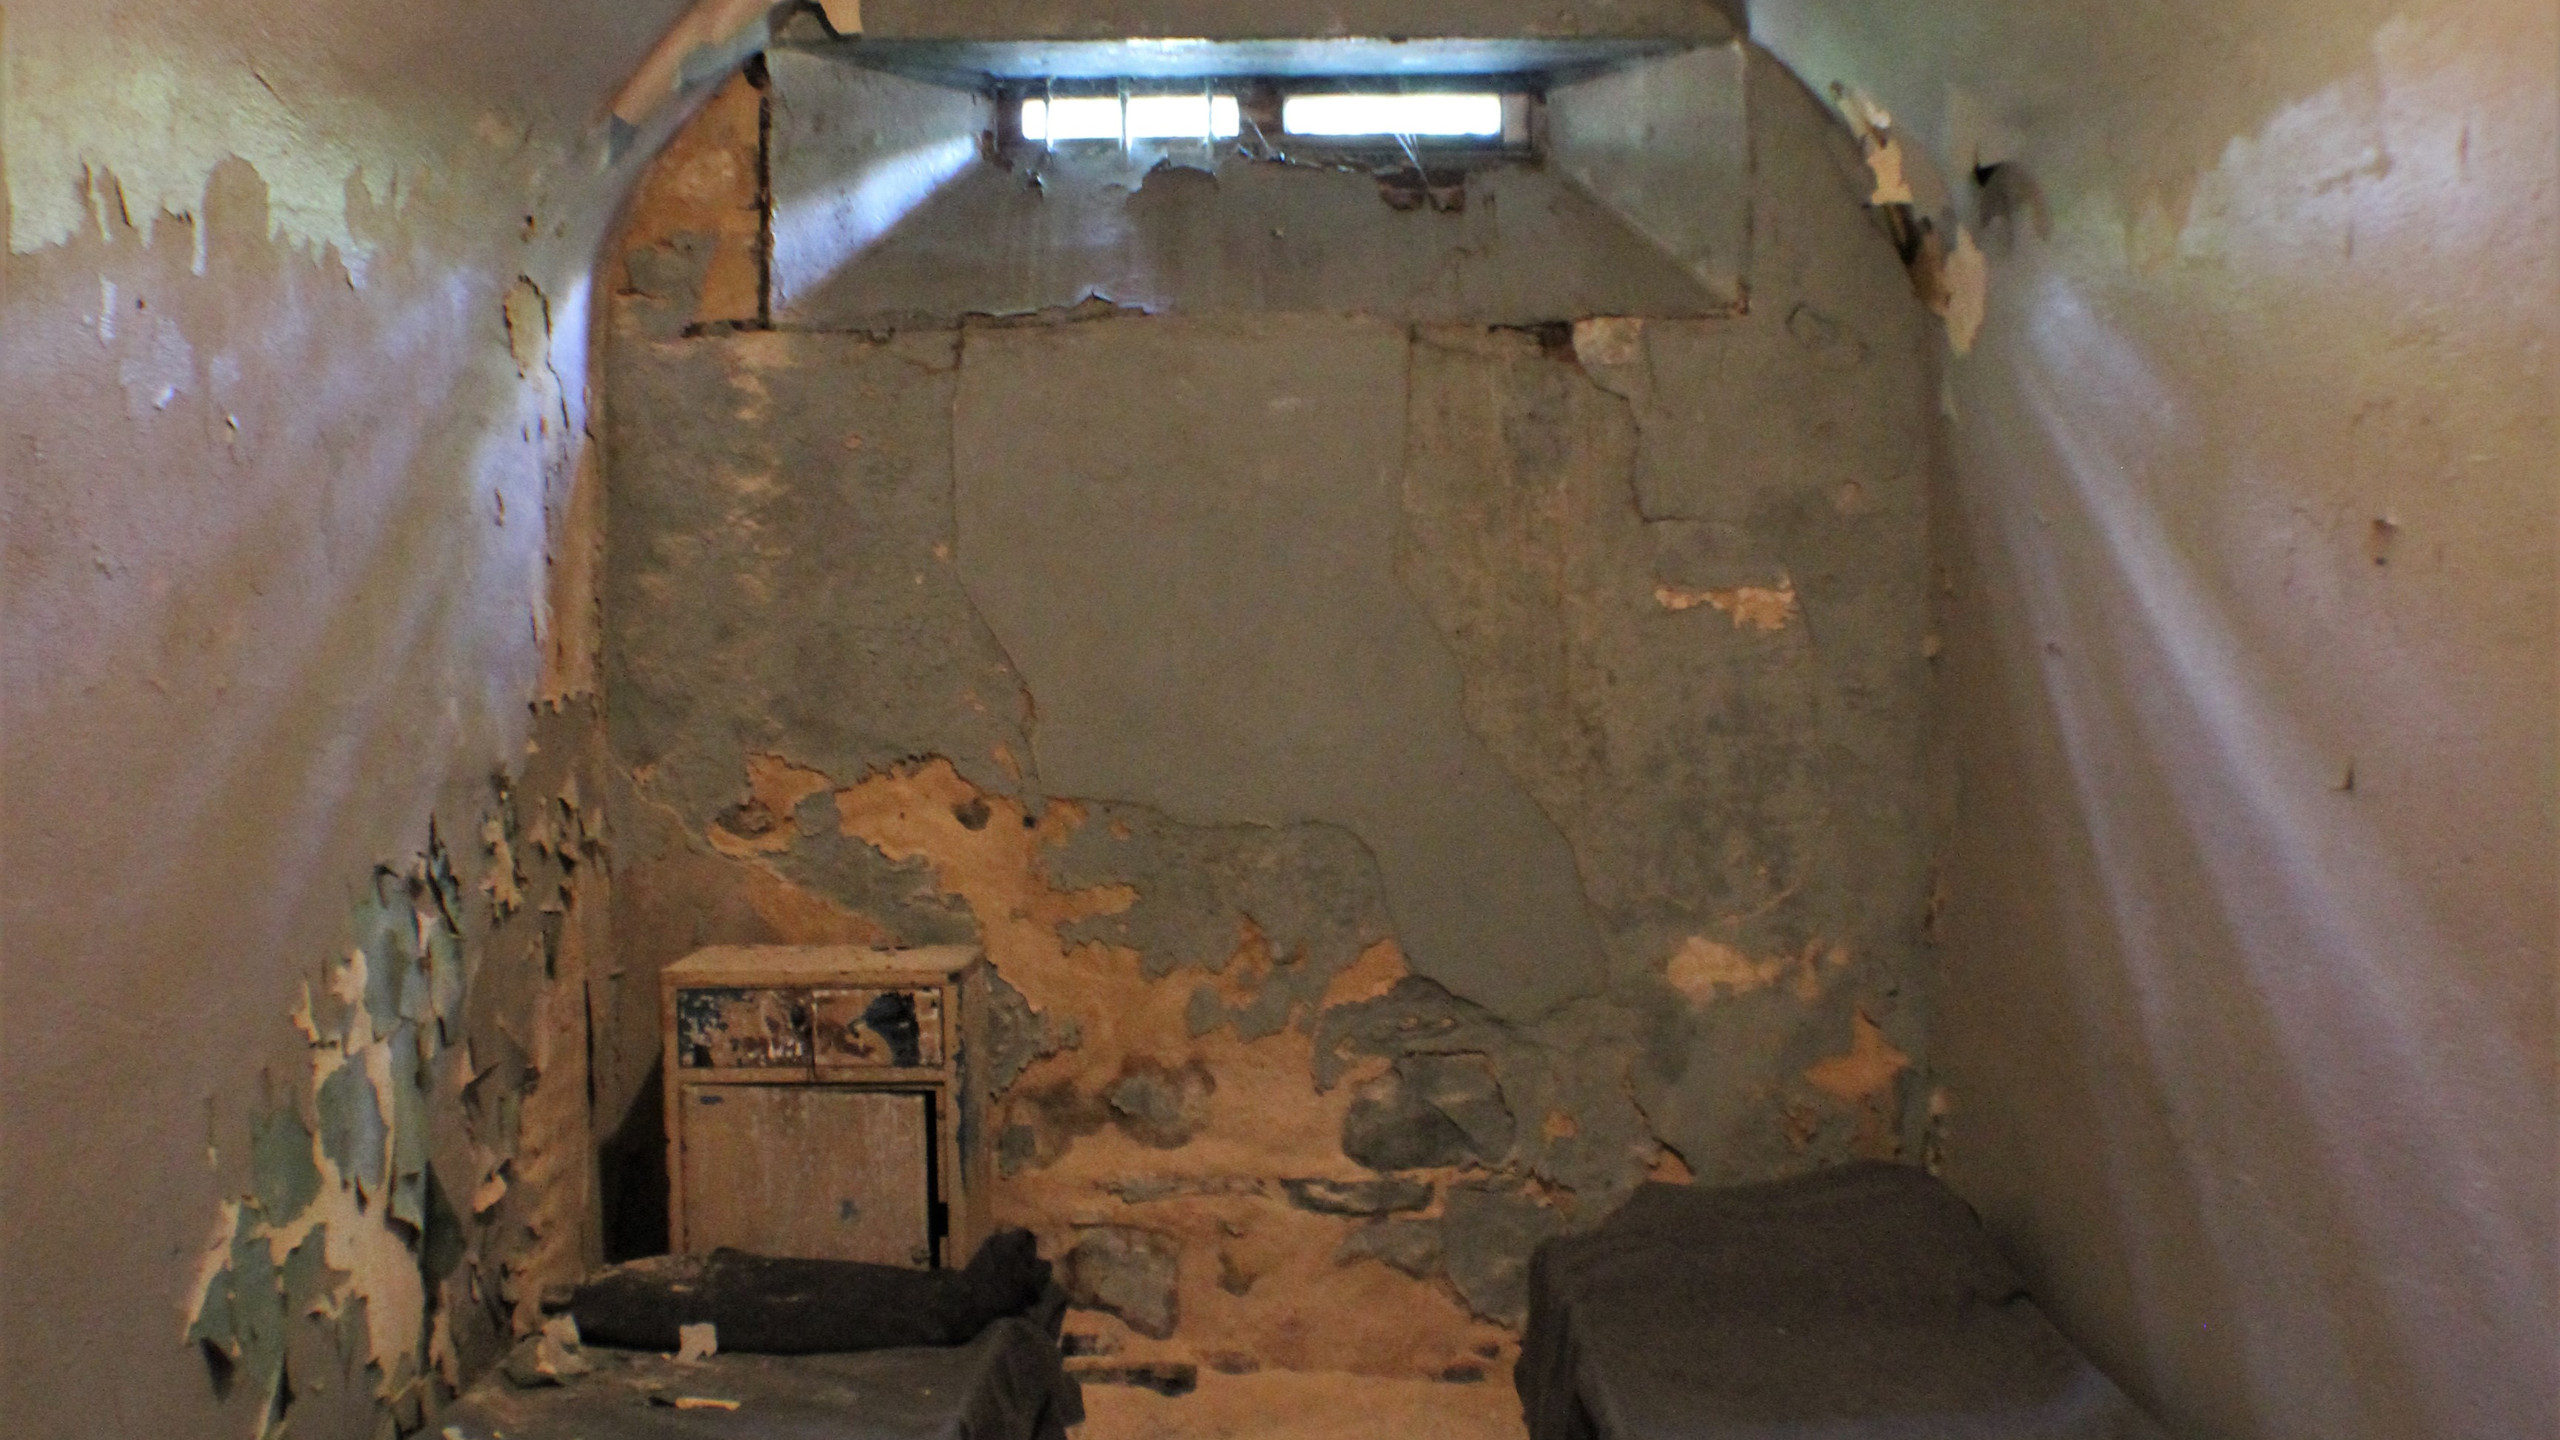 Cell inside the Old Jail